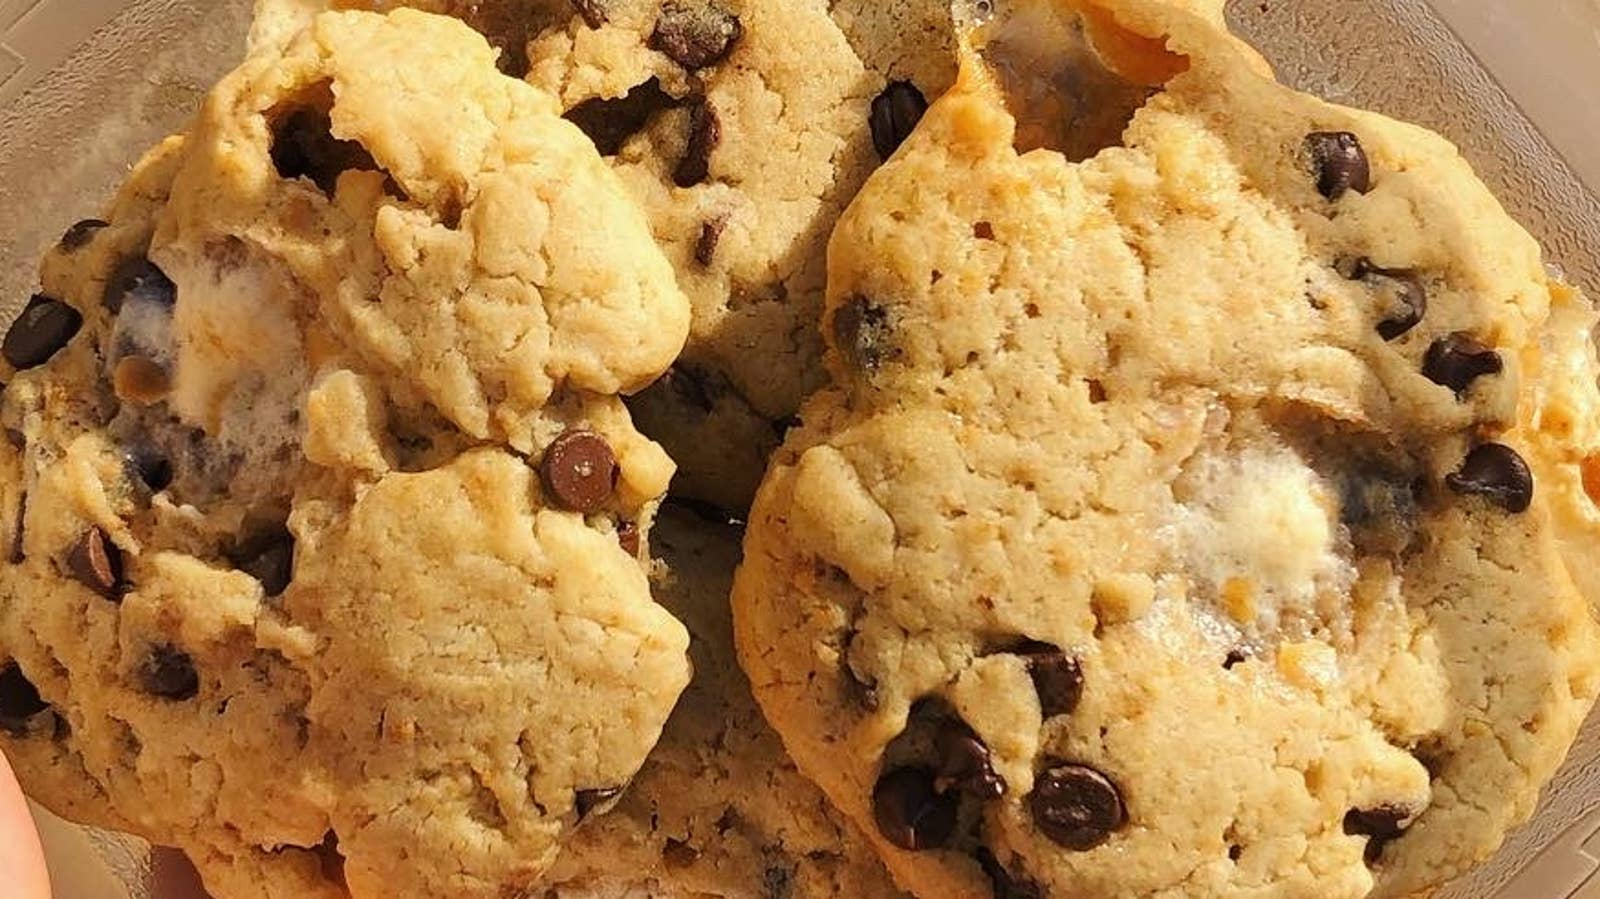 Sungyi's S'mores Cookies